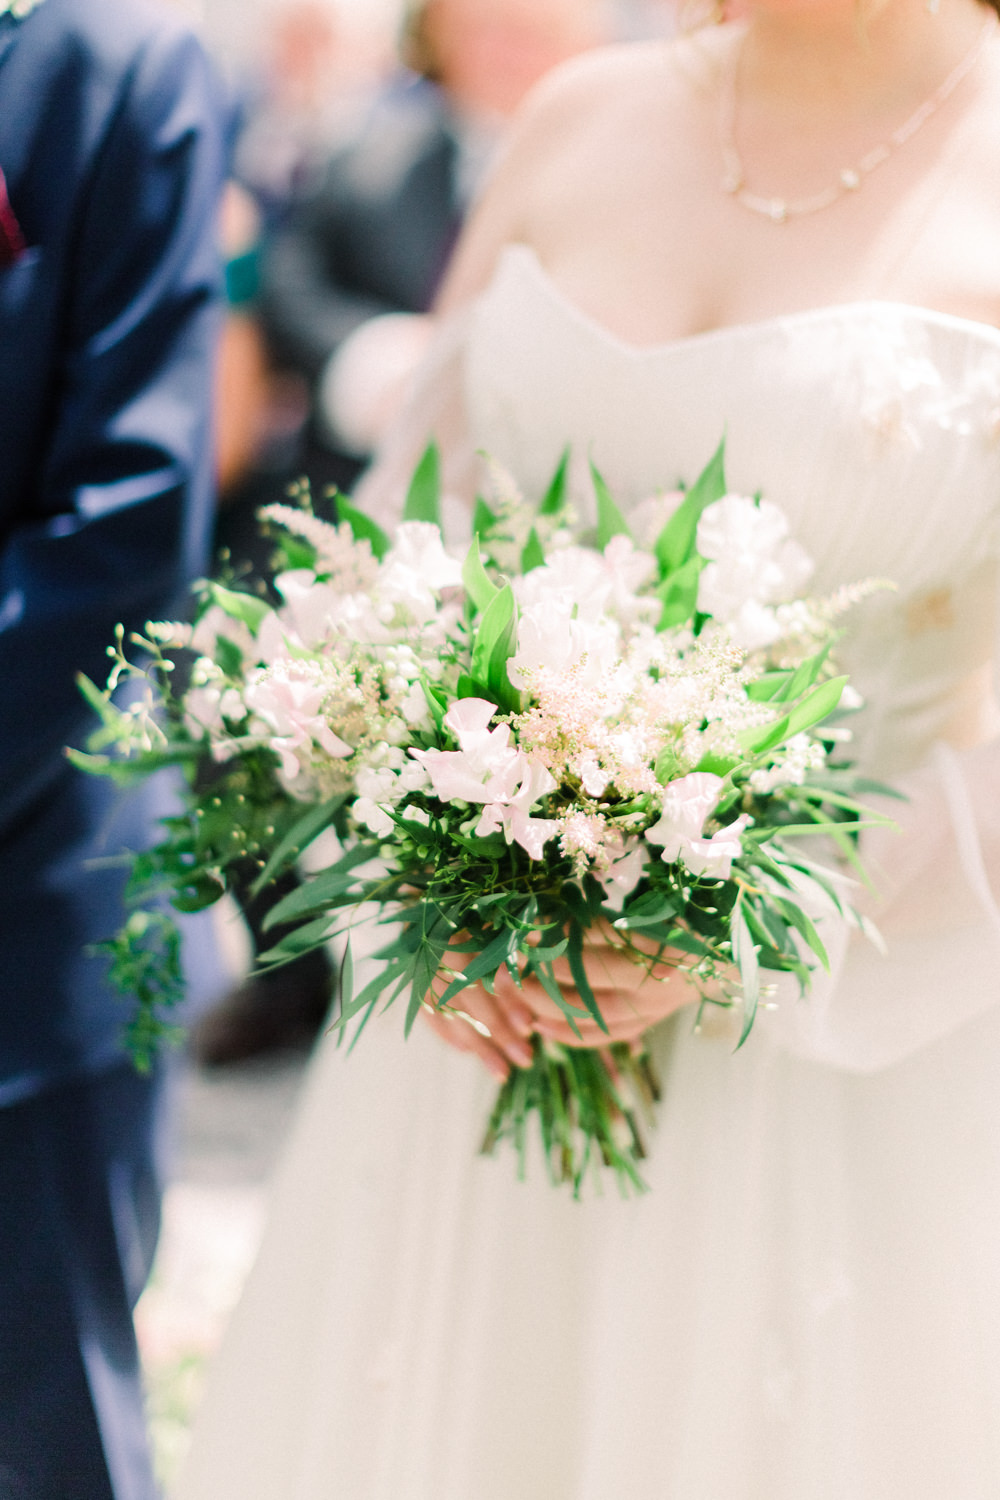 Bouquet Flowers Bride Bridal Astilbe Sweet Peas Lily of the Valley Tortworth Court Wedding Sanshine Photography